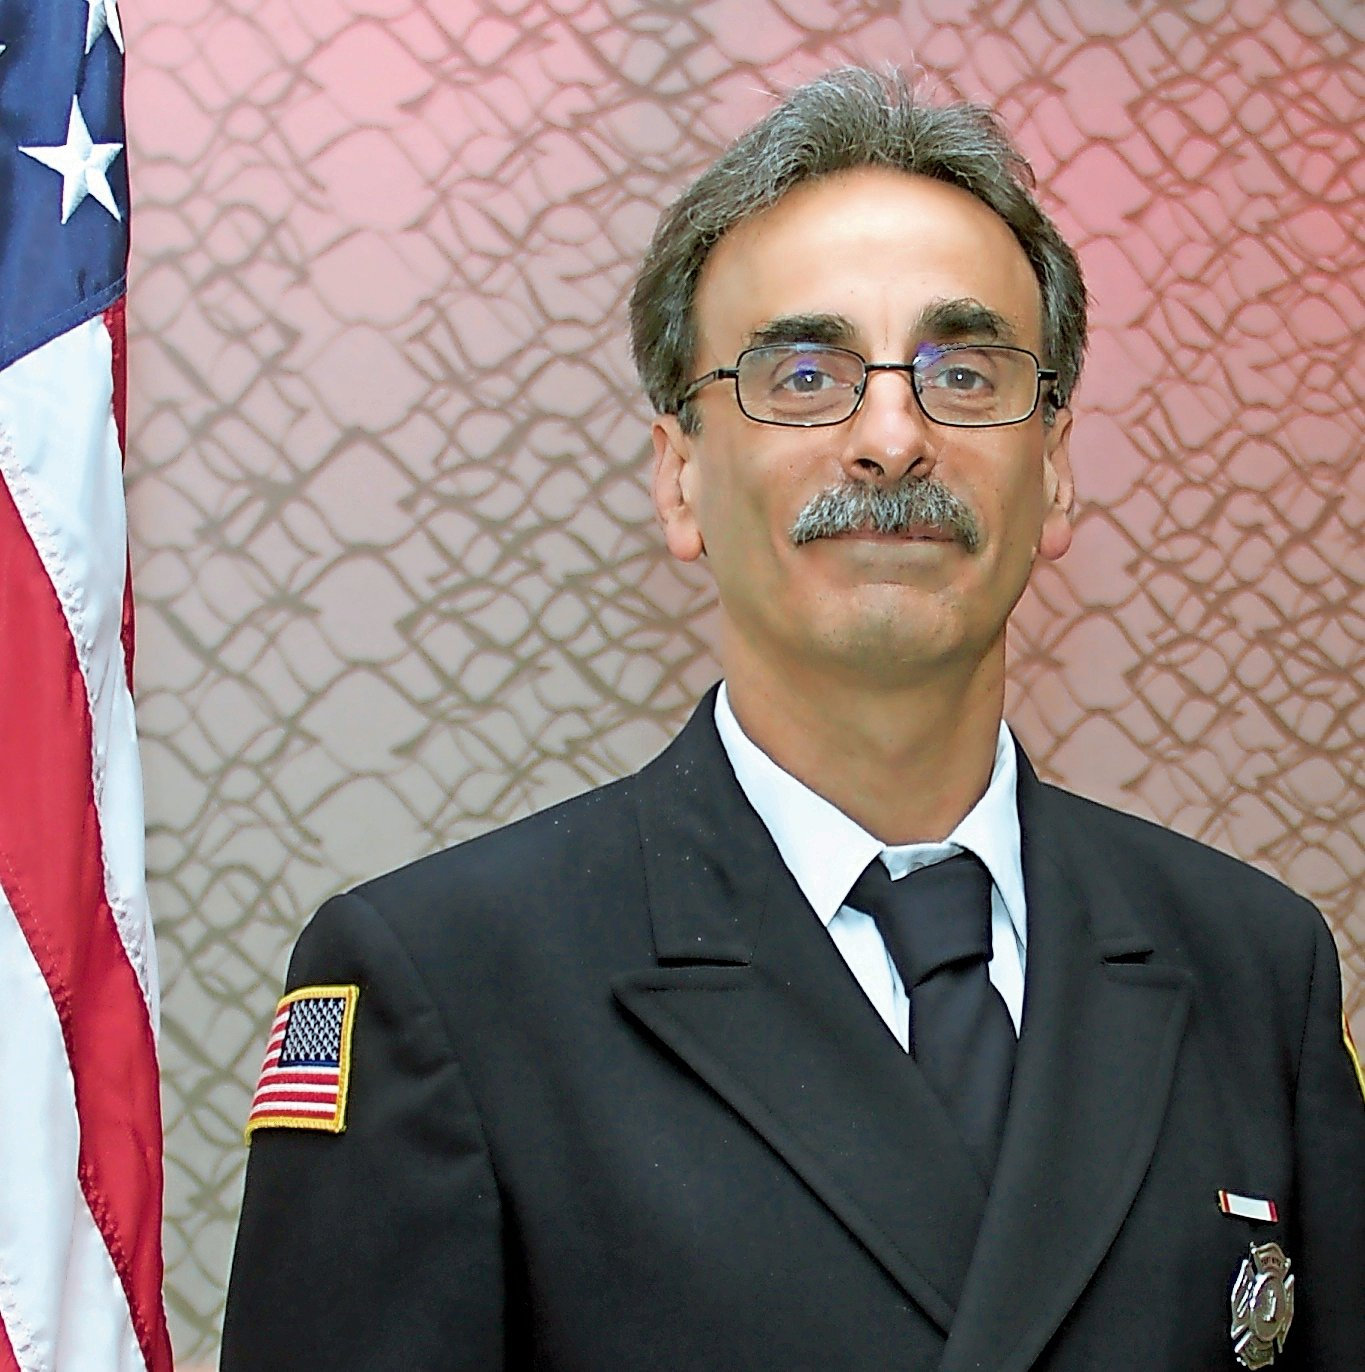 East Norwich Firefighter Jerry Presta has been the juniors' adviser for 21 years.